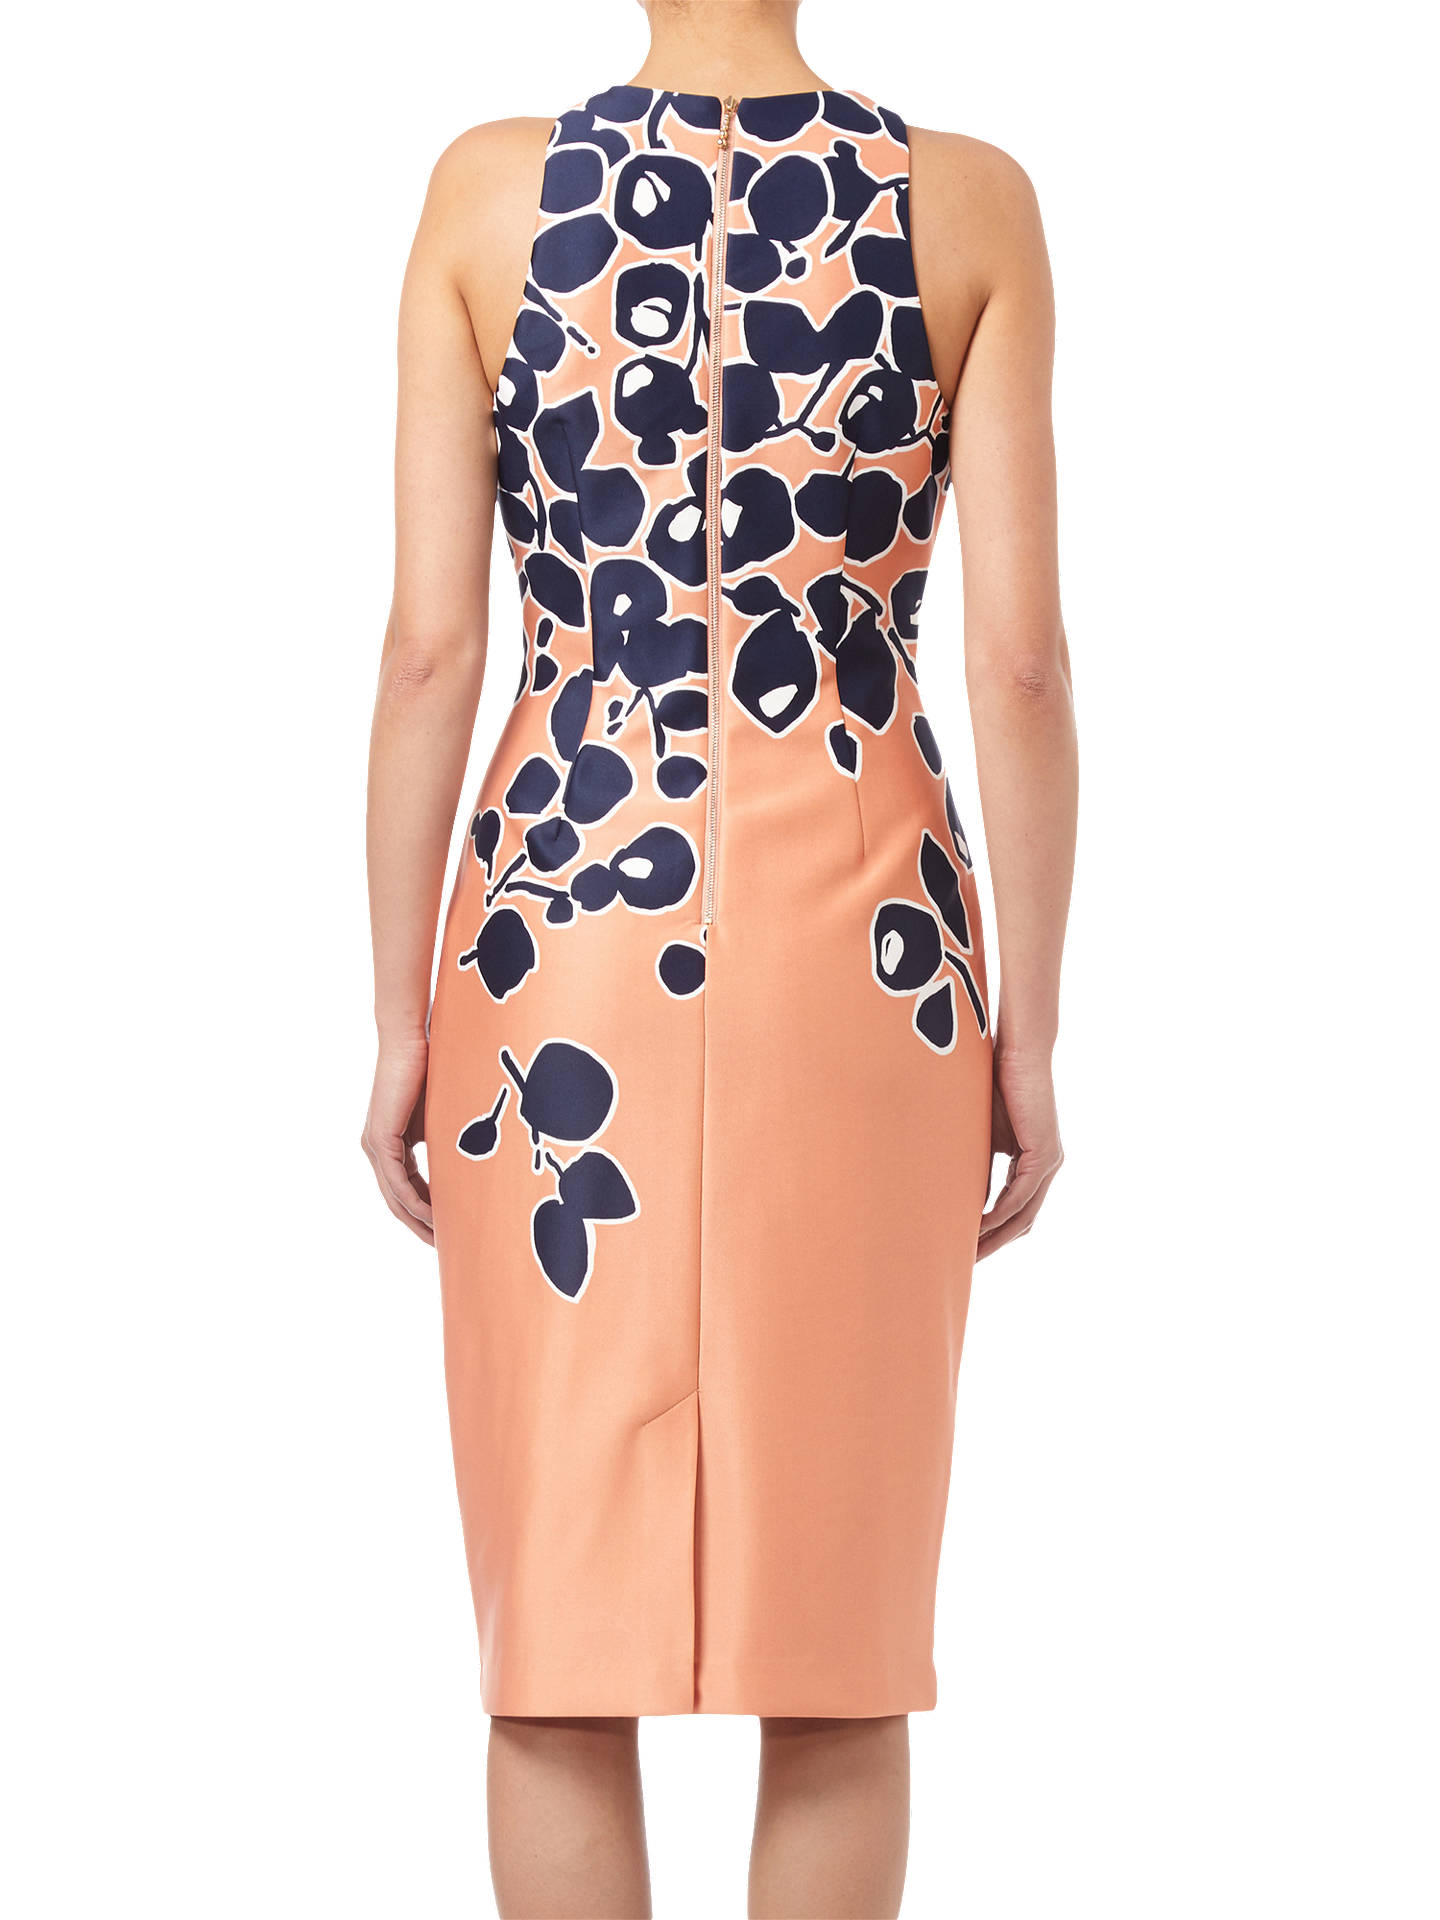 BuyAdrianna Papell Spotted Garden Printed Dress, Apricot/Navy, 8 Online at johnlewis.com